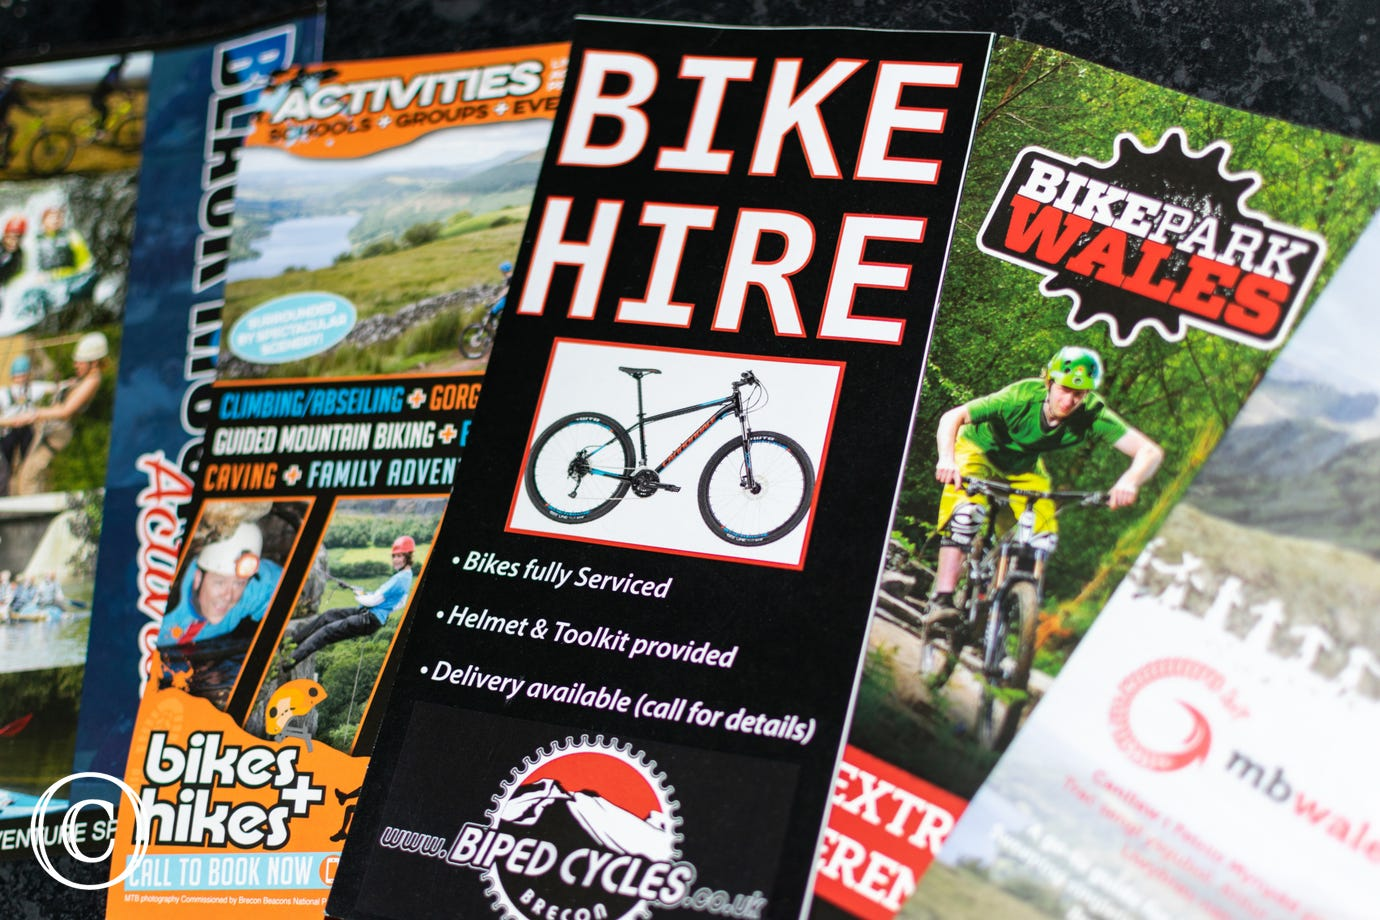 Bike Park Wales, Cwmcarn and Afan Forest Mountain Biking Centres all a short drive away